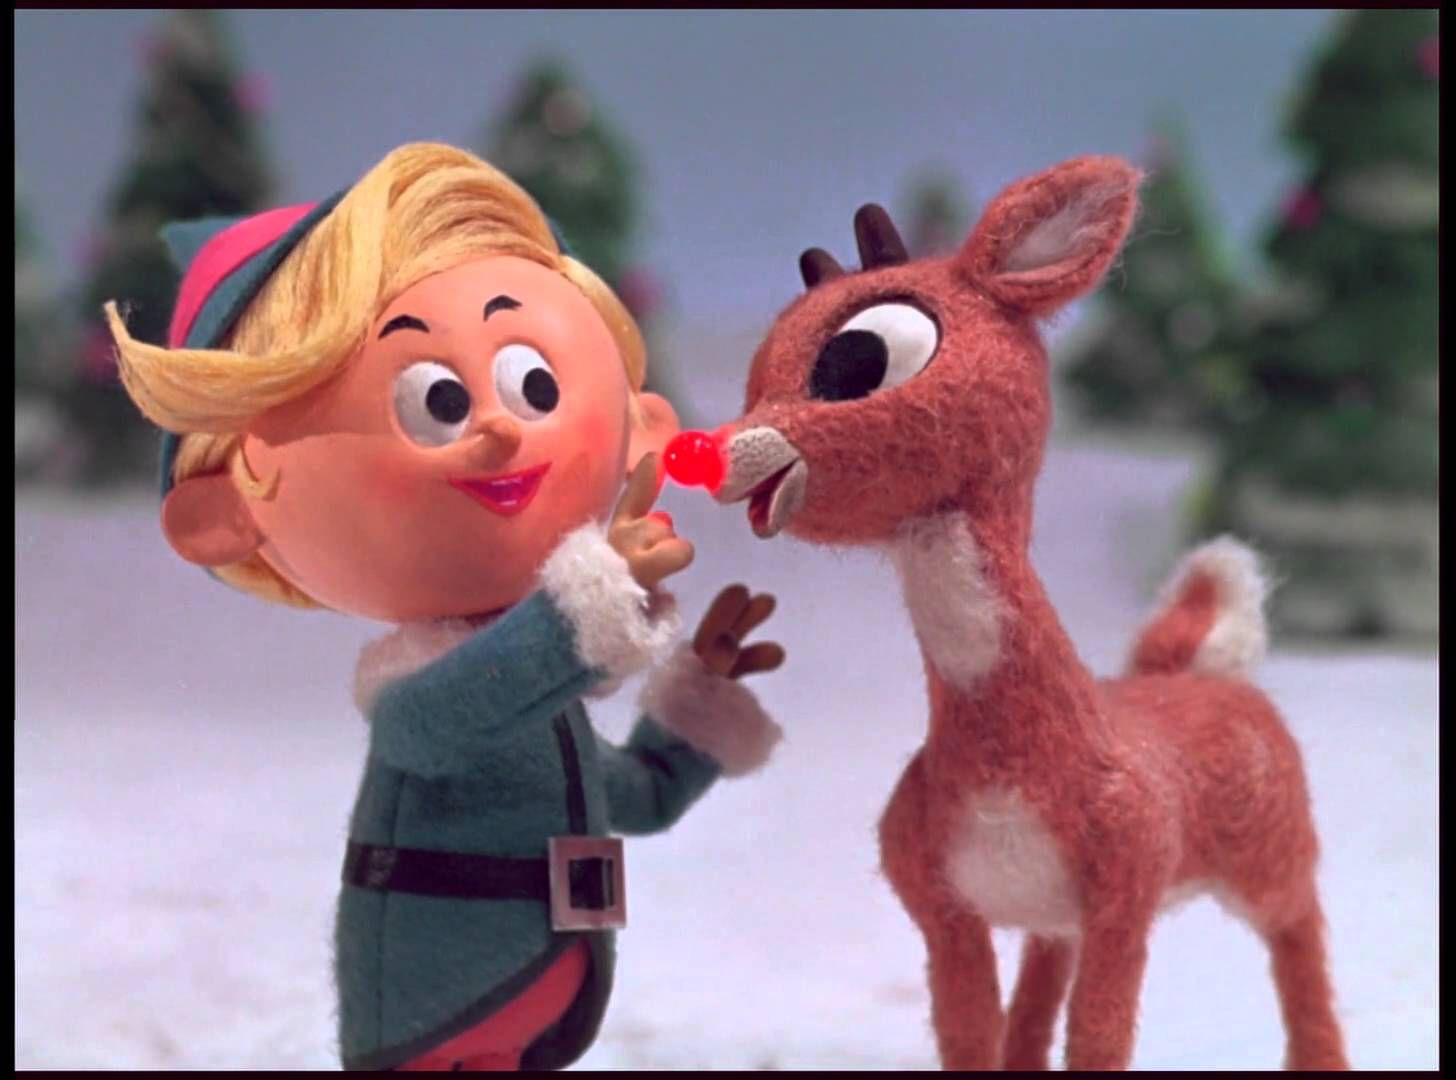 Rudolph the Red Nosed Reindeer 1964 1080p | Christmas | Pinterest ...